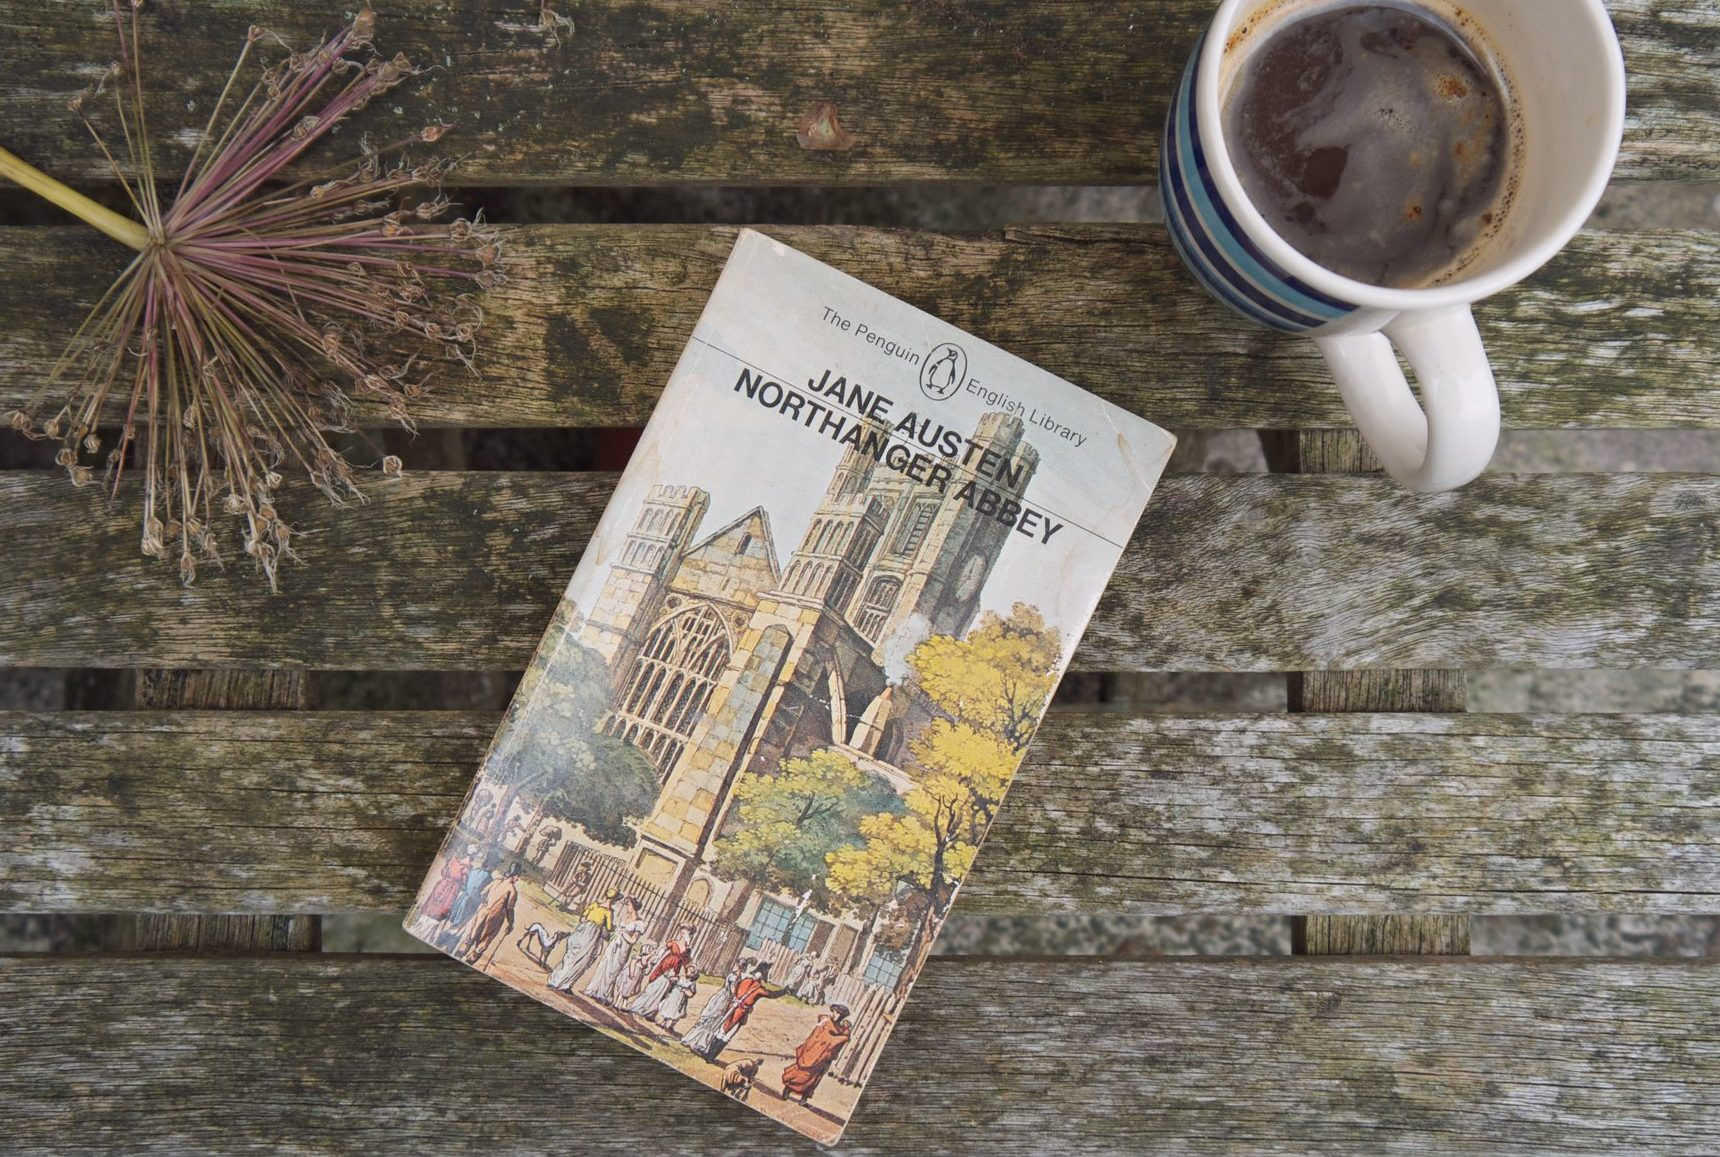 Medieval Reads: Northanger Abbey, by Jane Austen